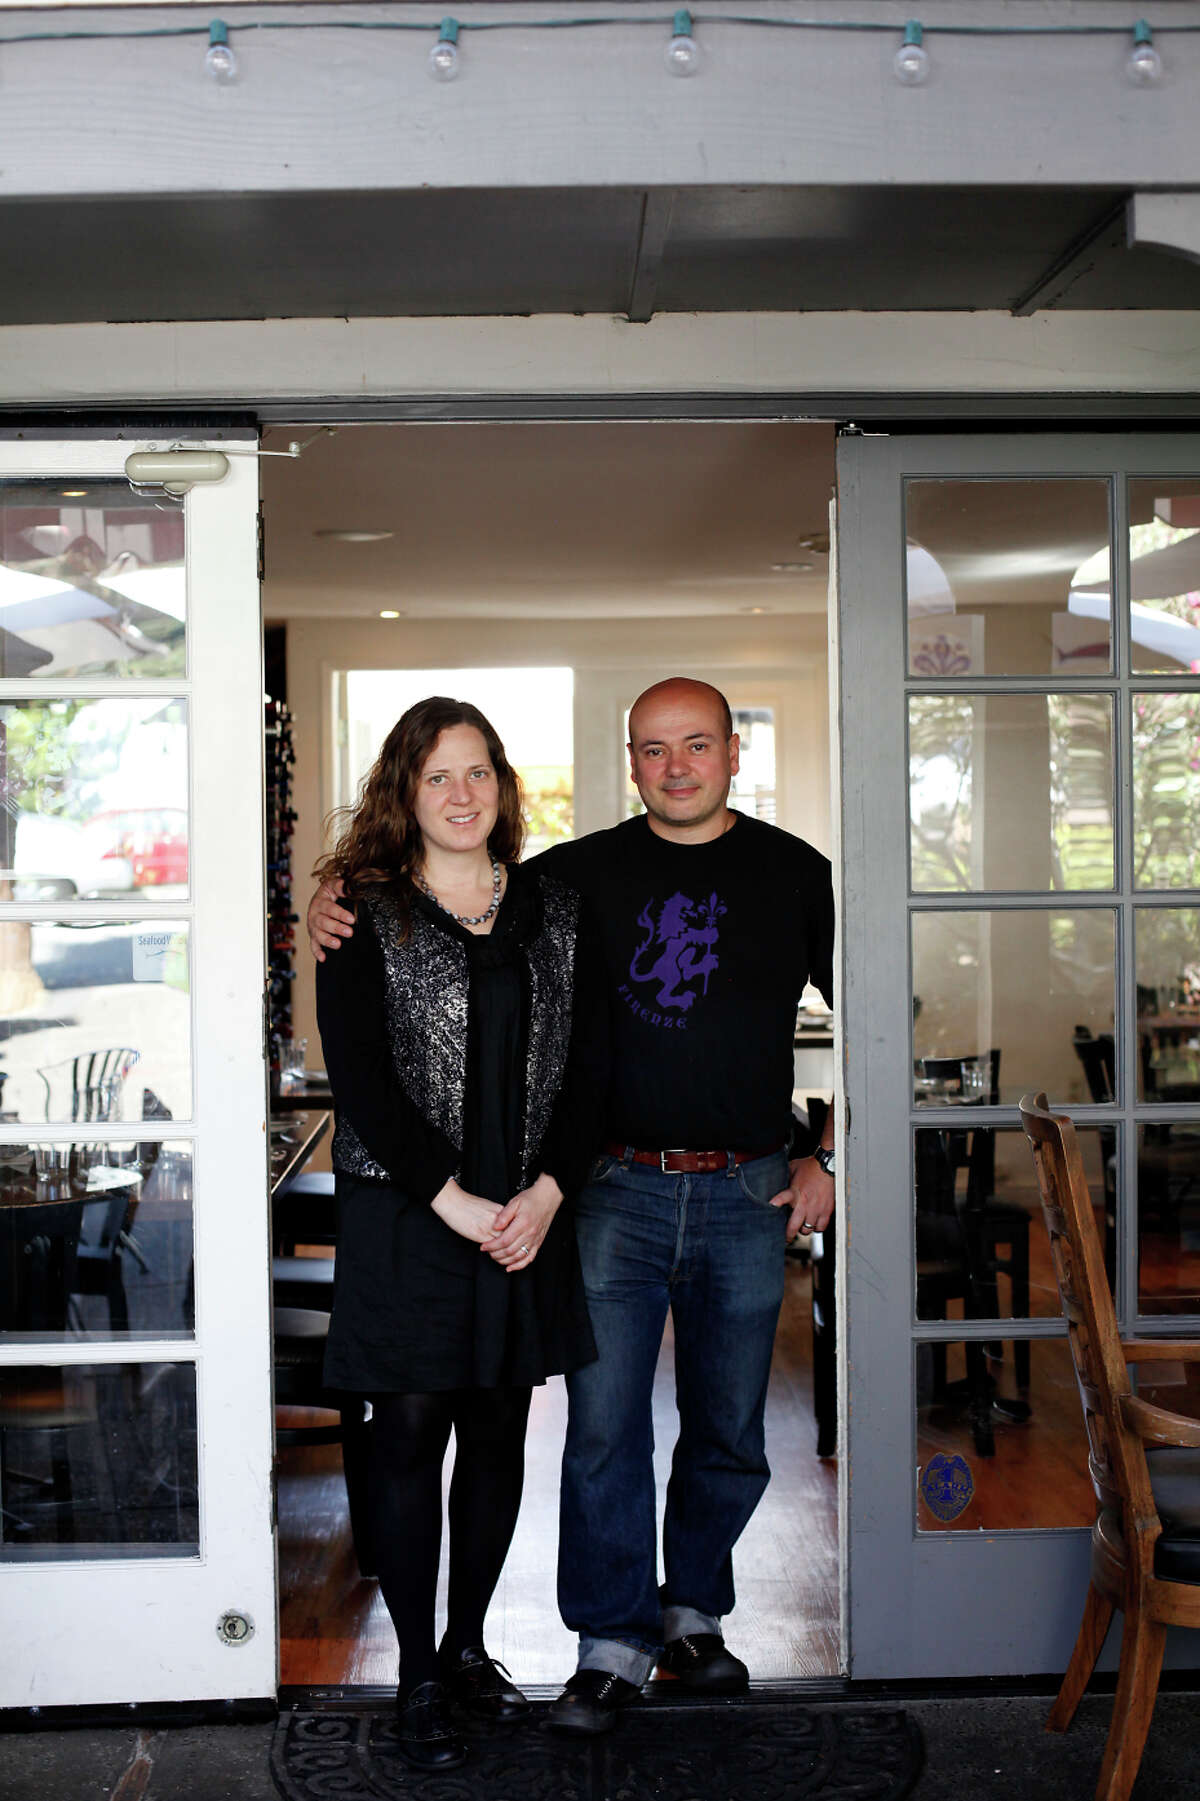 Owners Anna and Emanuele Bartolini at la Balena, their cozy, 48-seat restaurant in Carmel-by-the-Sea.